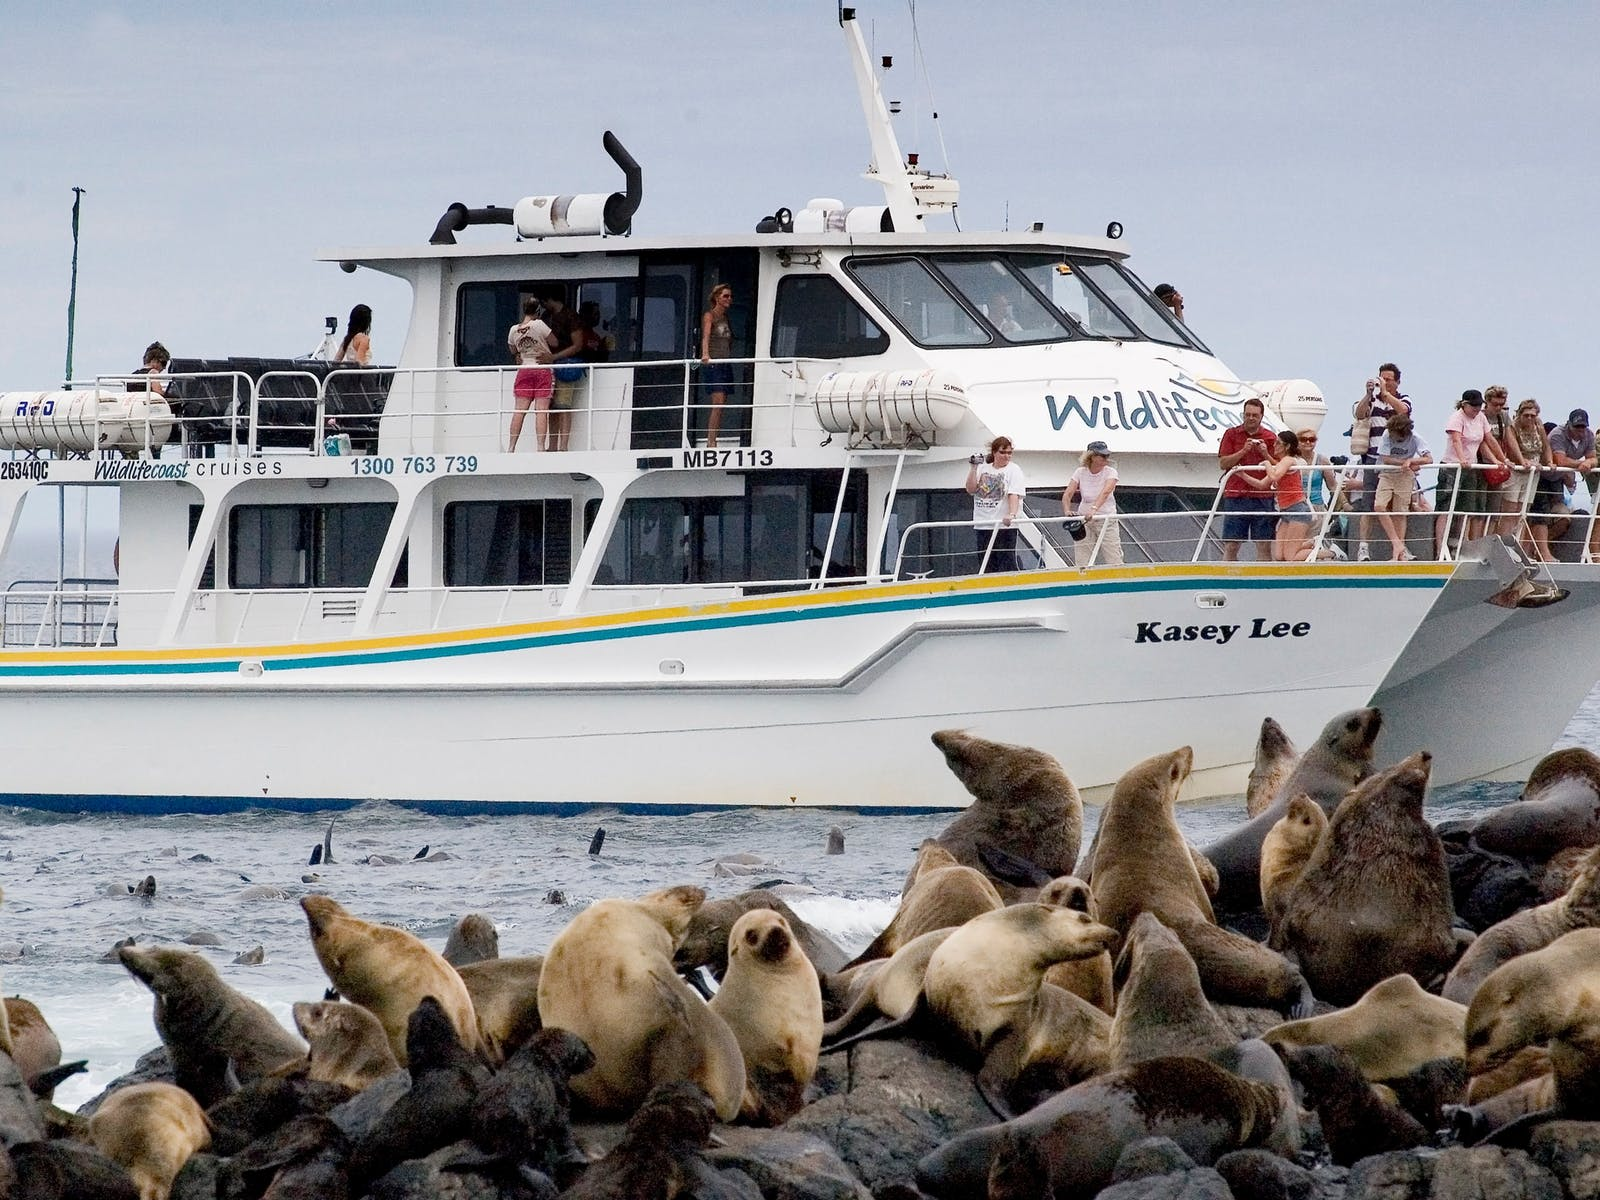 Wildlife Coast Cruises